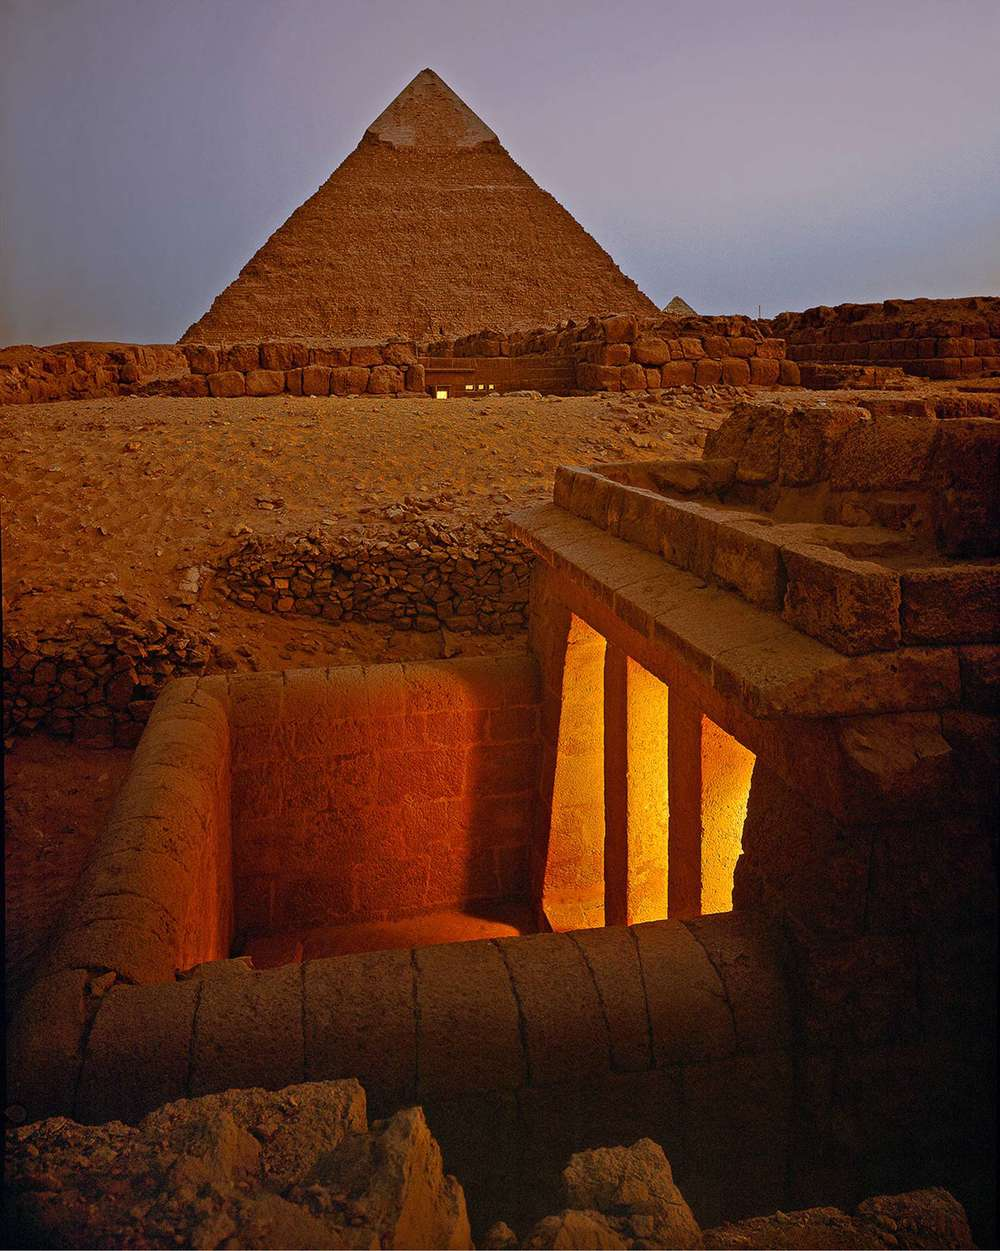 Newly excavated tombs at Giza, Egypt 1990, Shot for Condé Nast Traveler 1A - Paul Warchol.png